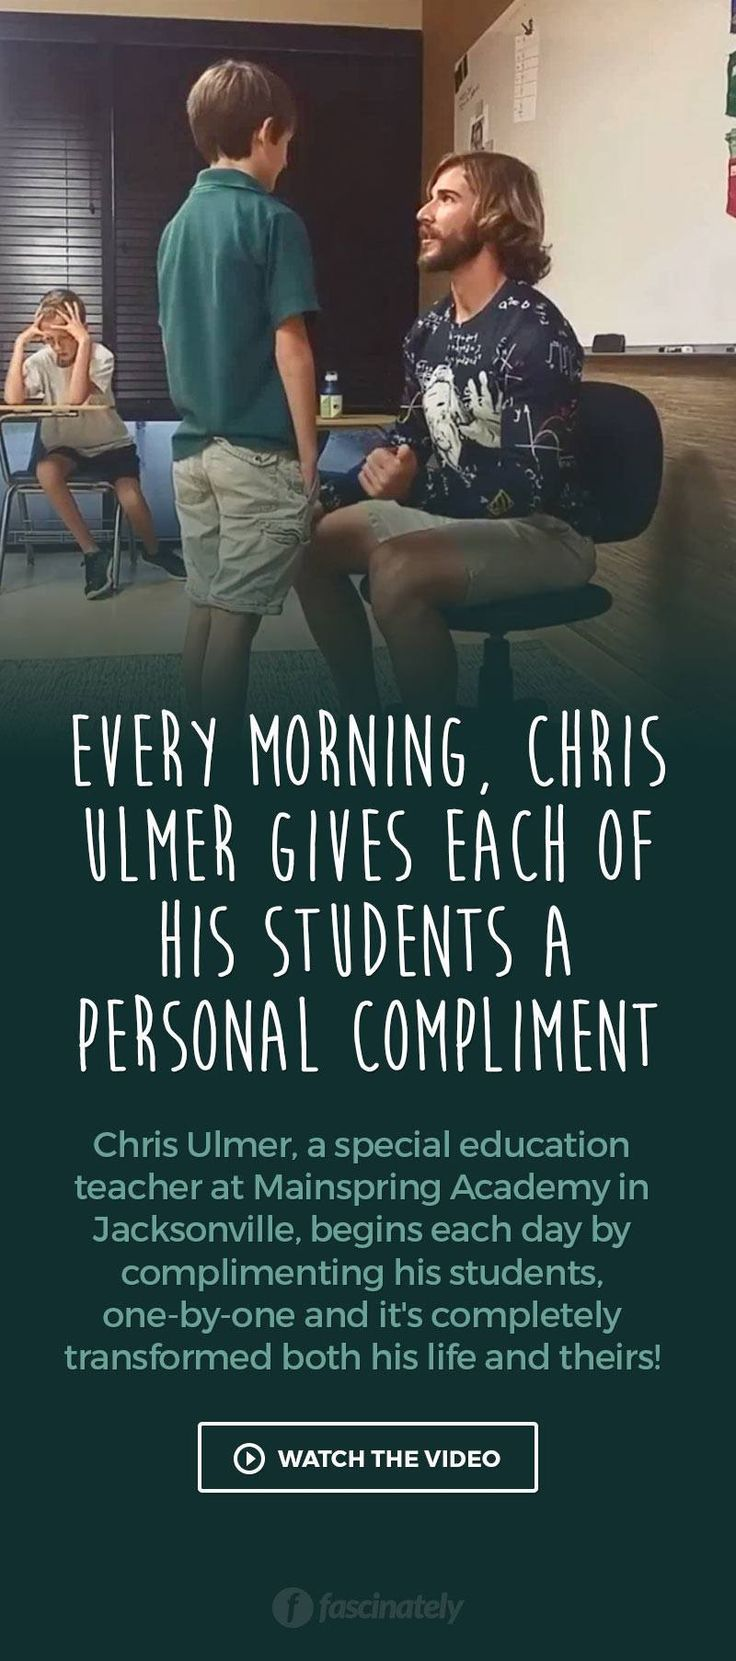 Every Morning, Chris Ulmer Gives Each of His Students a Personal Compliment